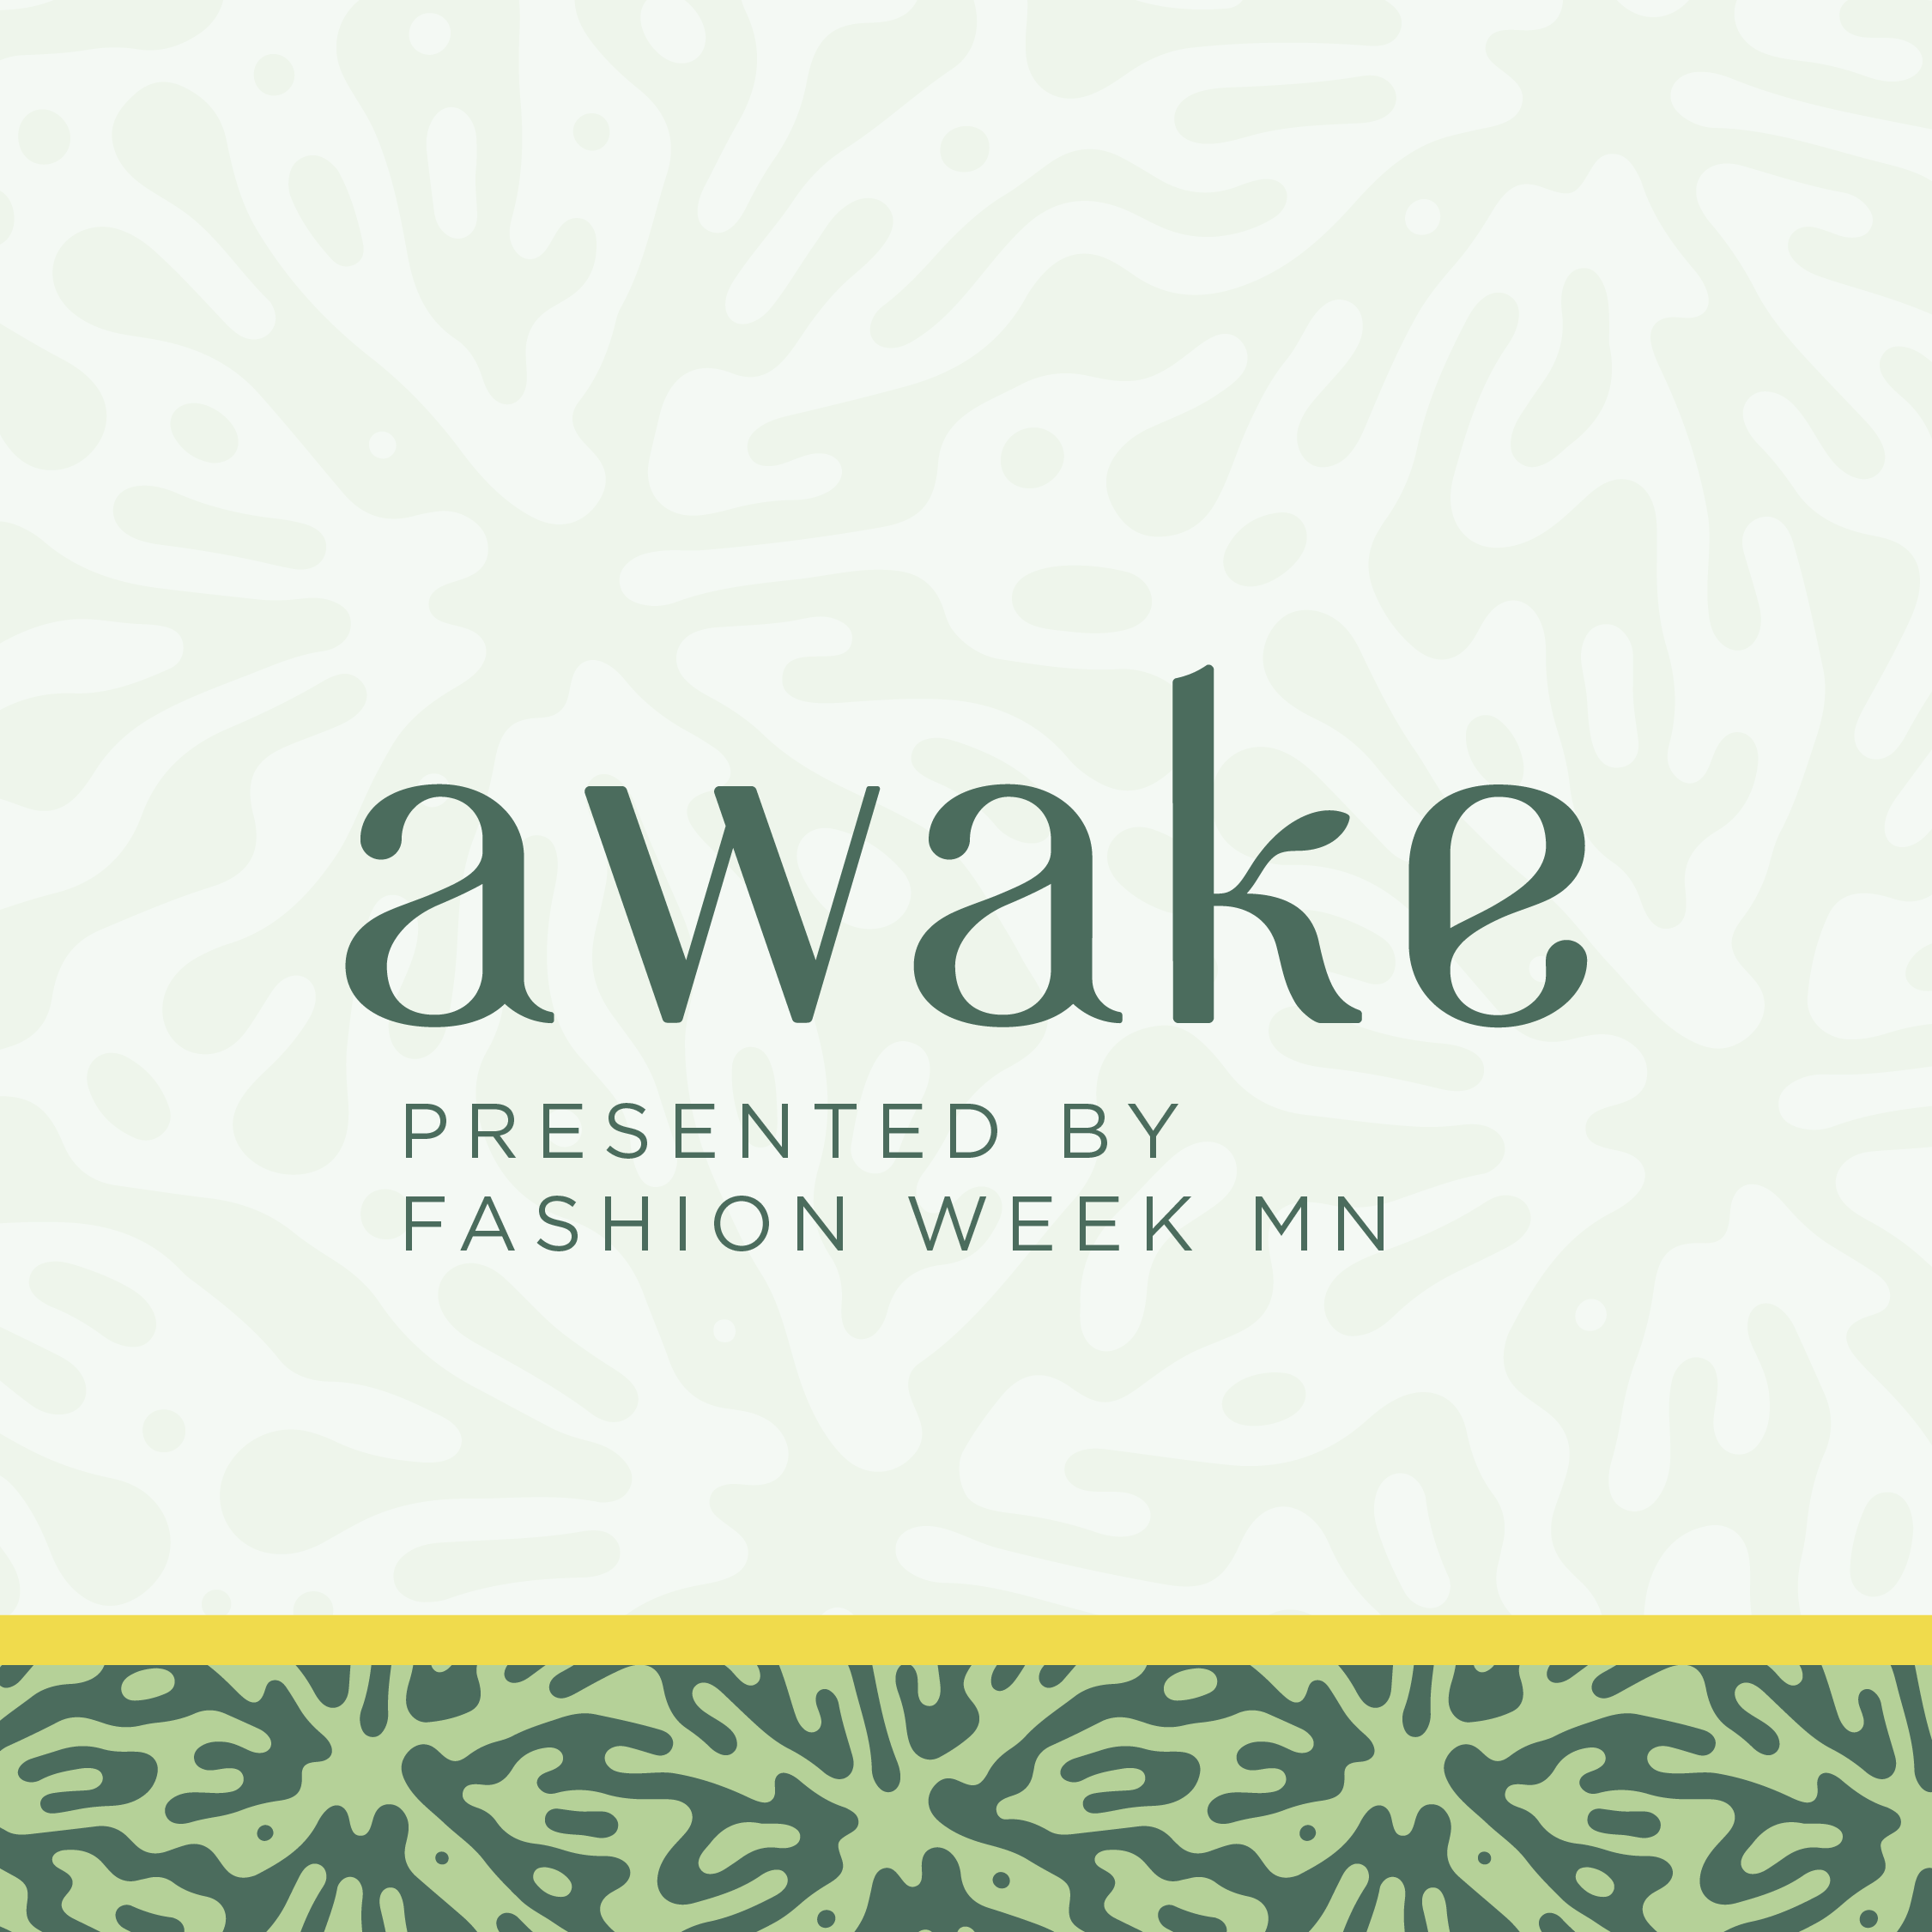 Logo created for Fashion Week MN by VZNCY